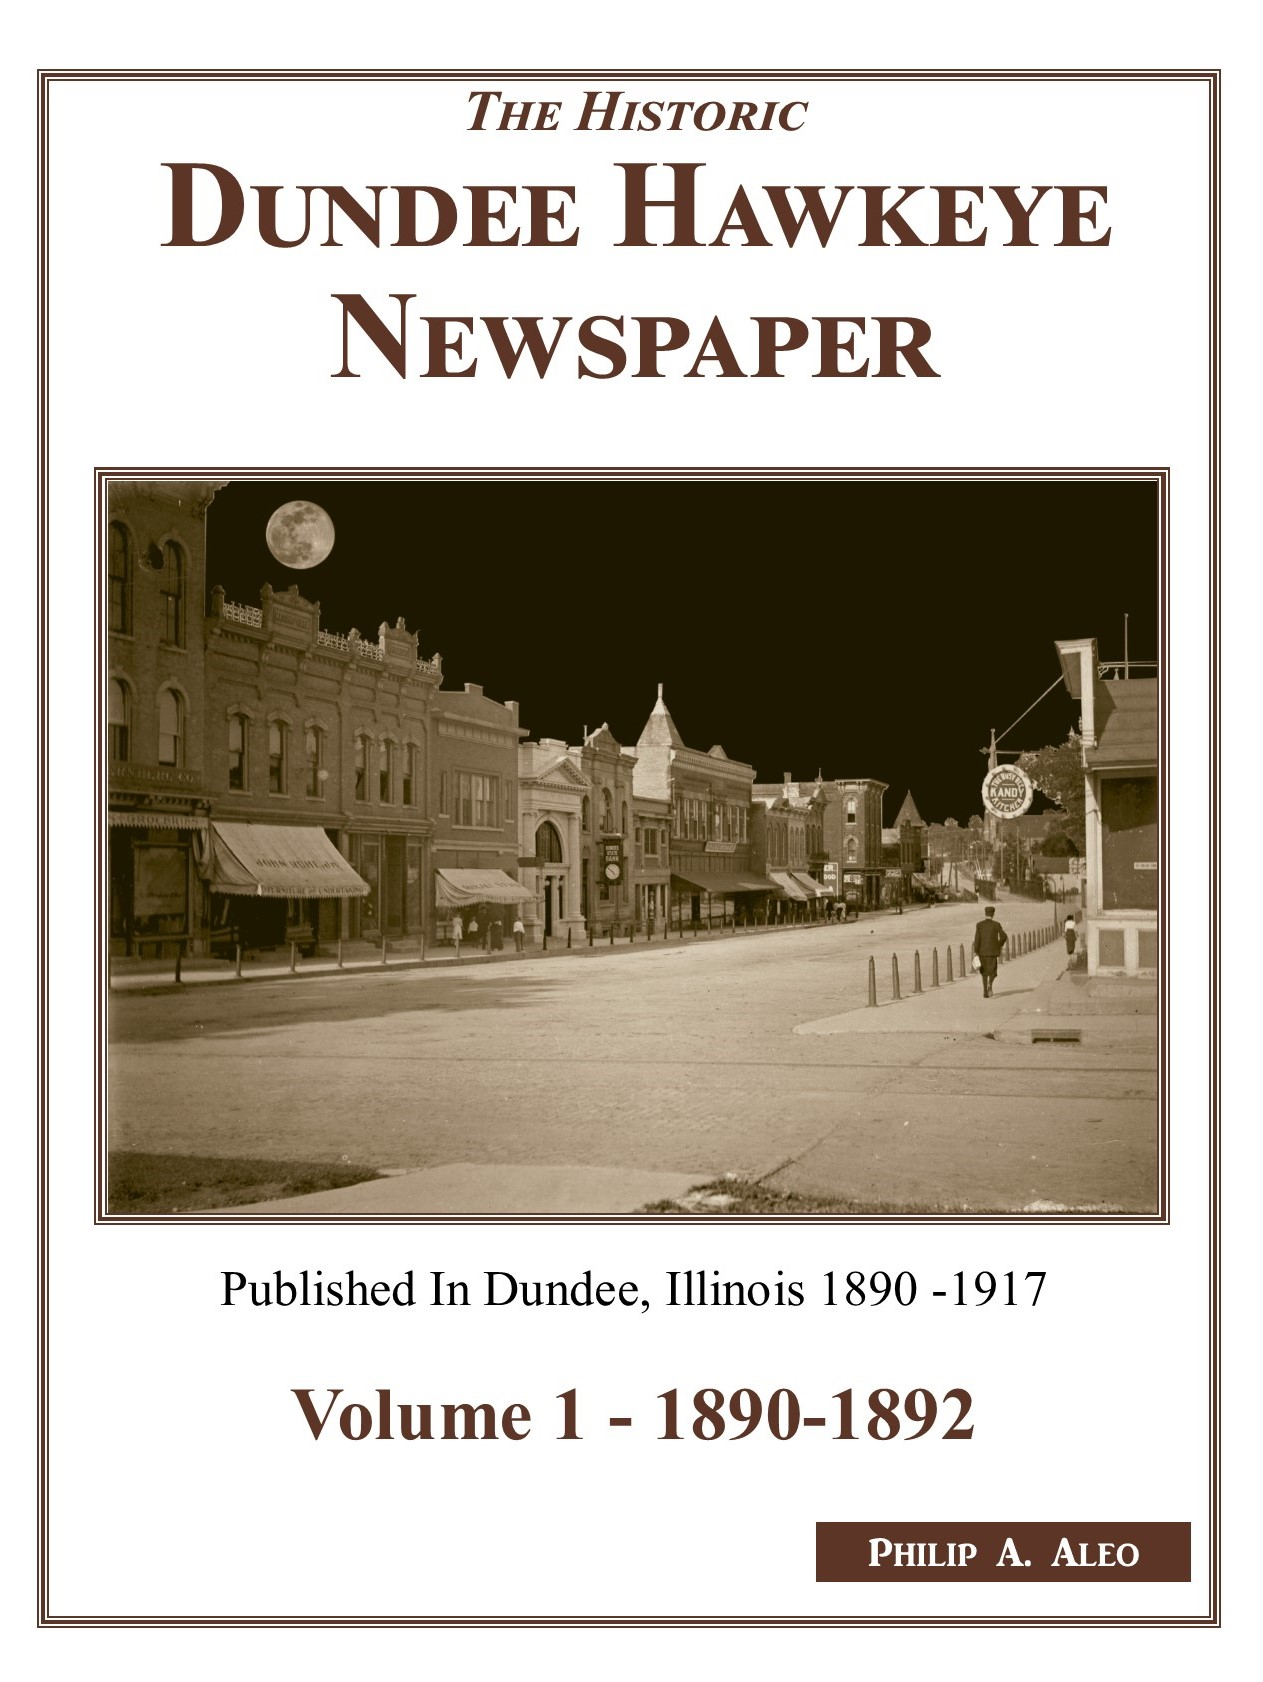 Cover - Front - Vol 1.jpg